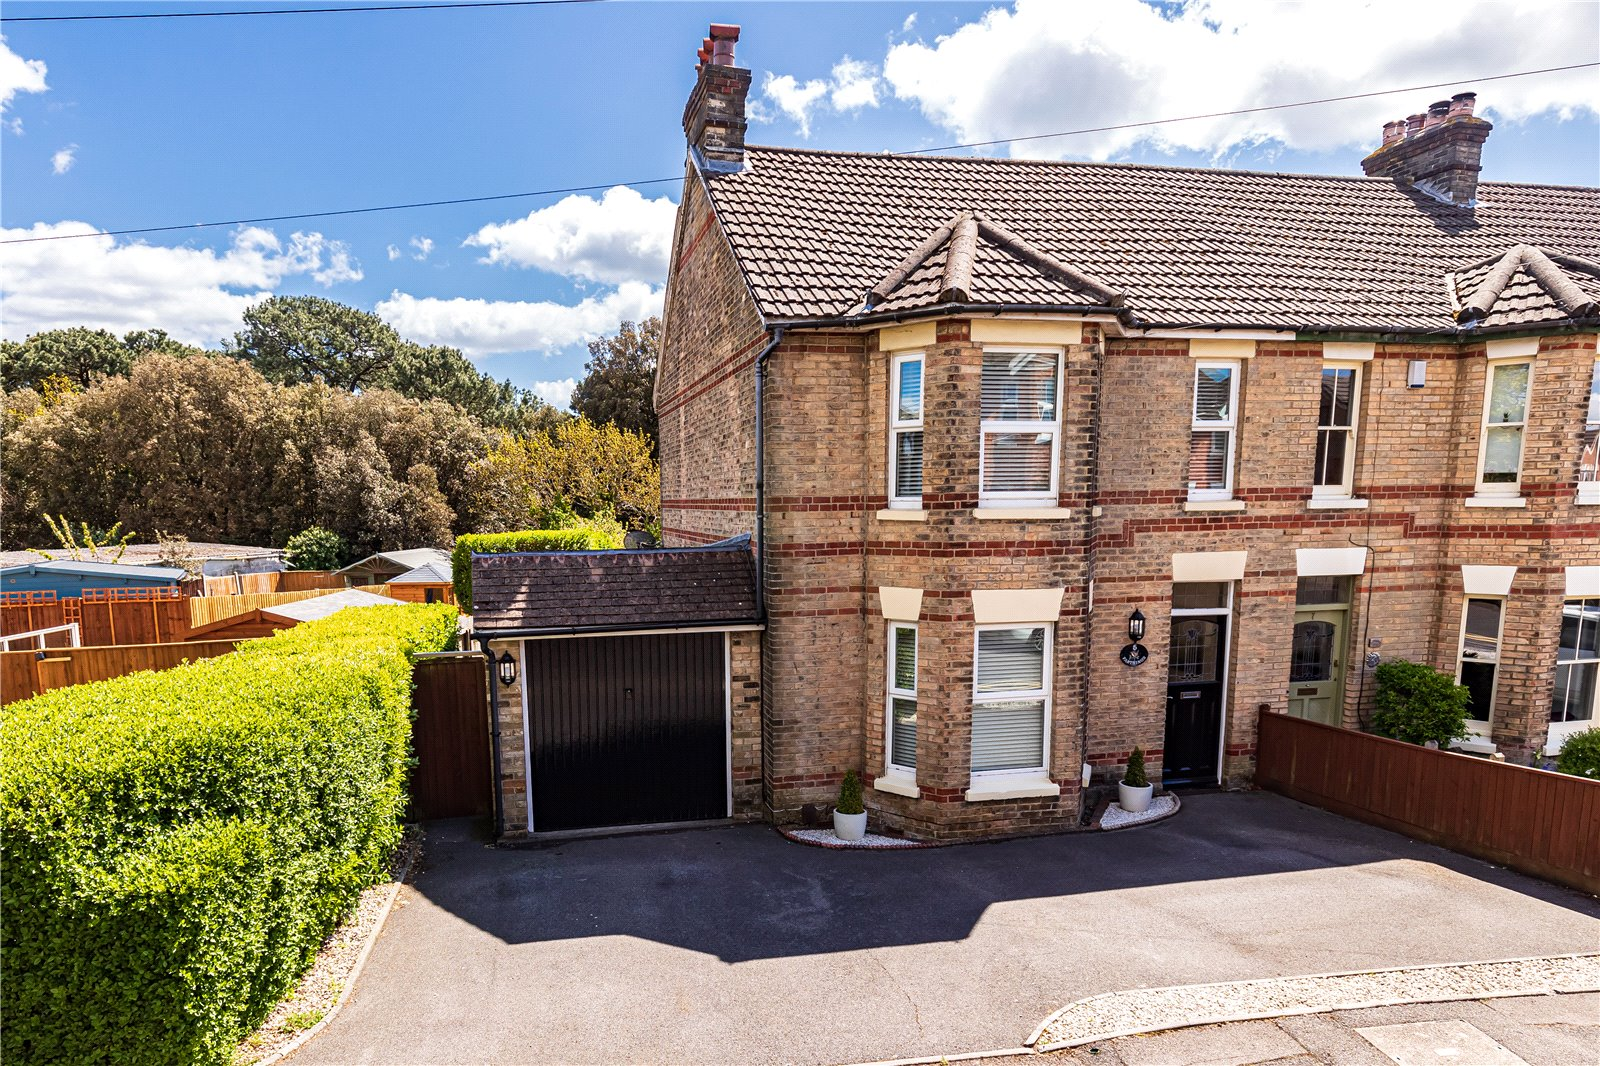 3 bed house for sale in Doyne Road, Penn Hill, BH14